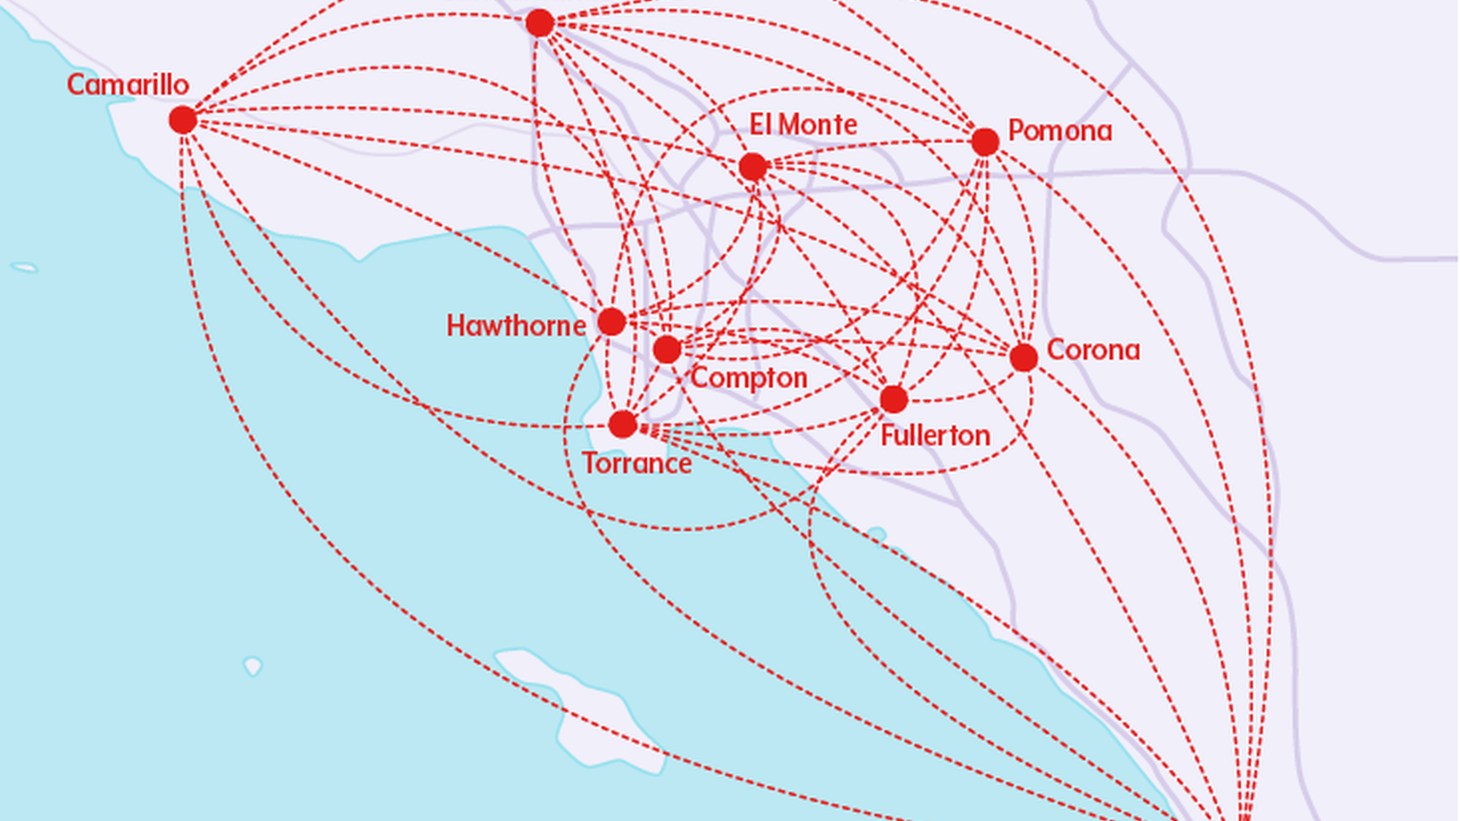 Proposed routes connecting regional airports around Southern California.